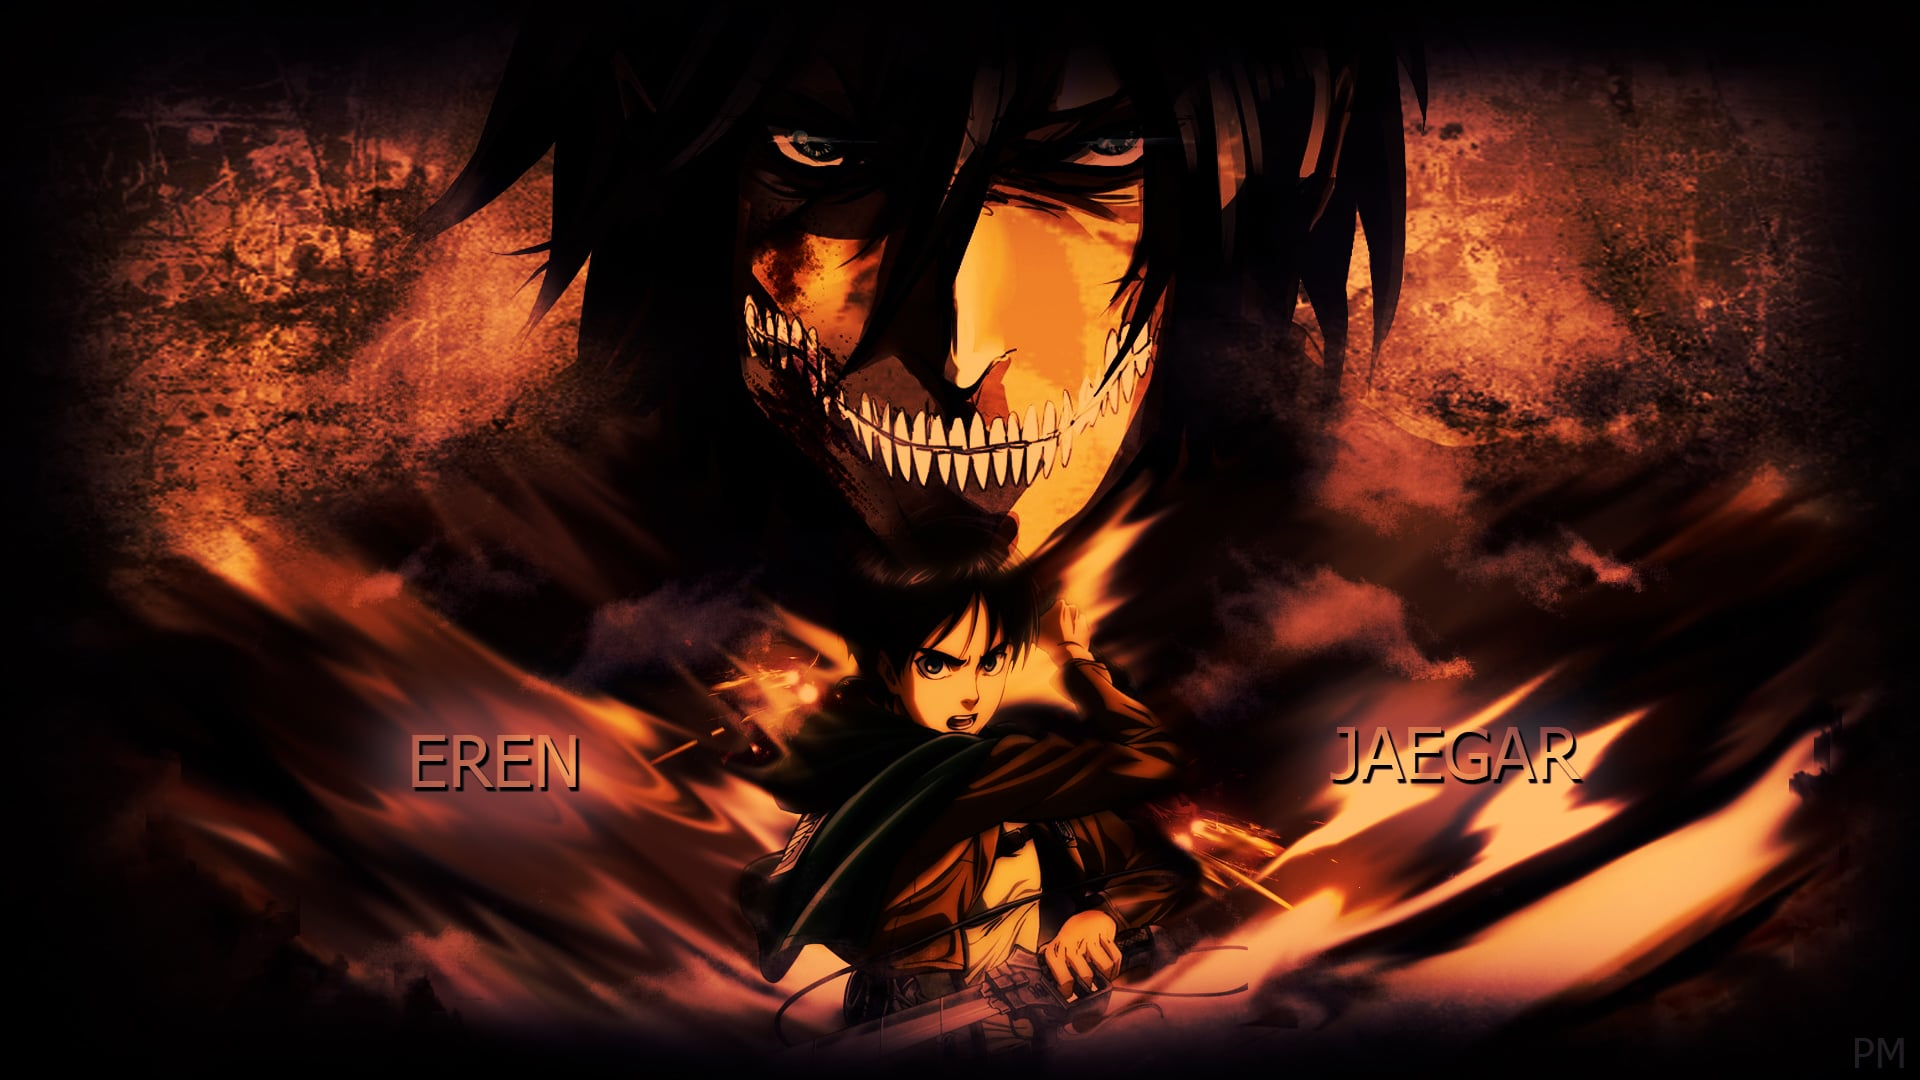 Attack On Titans Wallpapers Hd Hd Wallpaper Backgrounds Attack On Titan Desktop Wallpaper Eren 1920x1080 Download Hd Wallpaper Wallpapertip